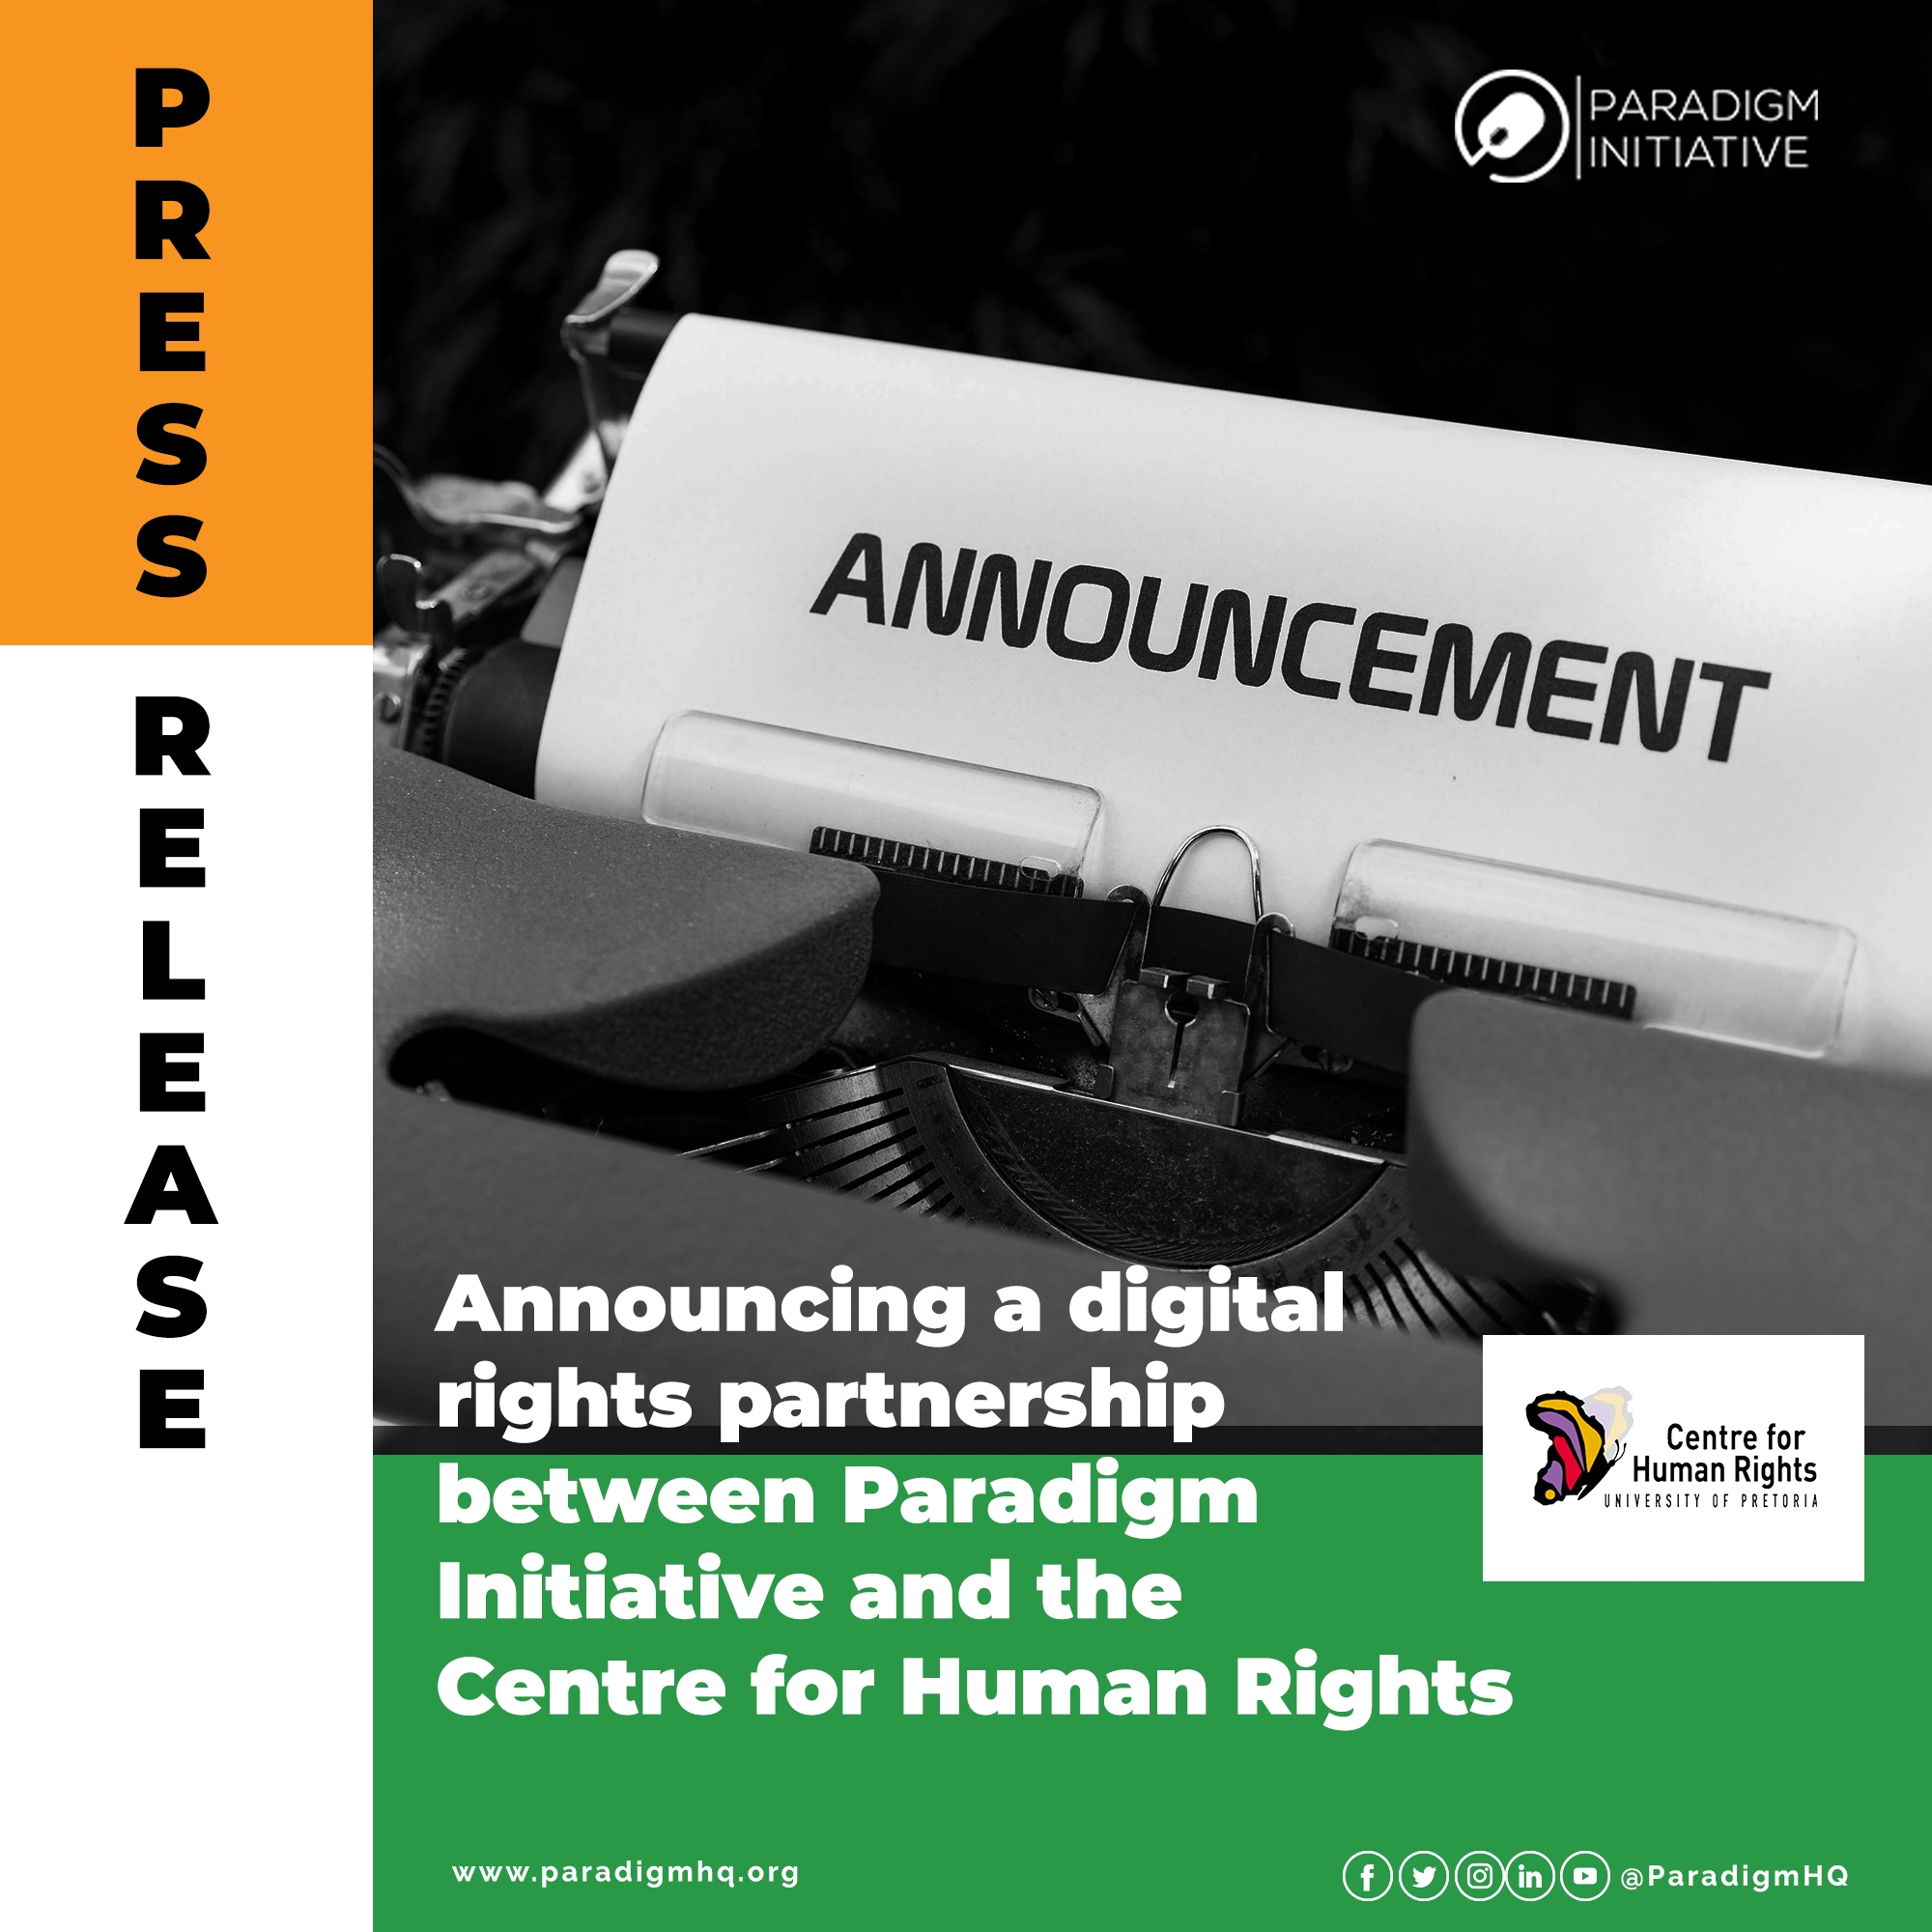 Press Release: Announcing a digital rights partnership between Paradigm Initiative and the Centre for Human Rights.